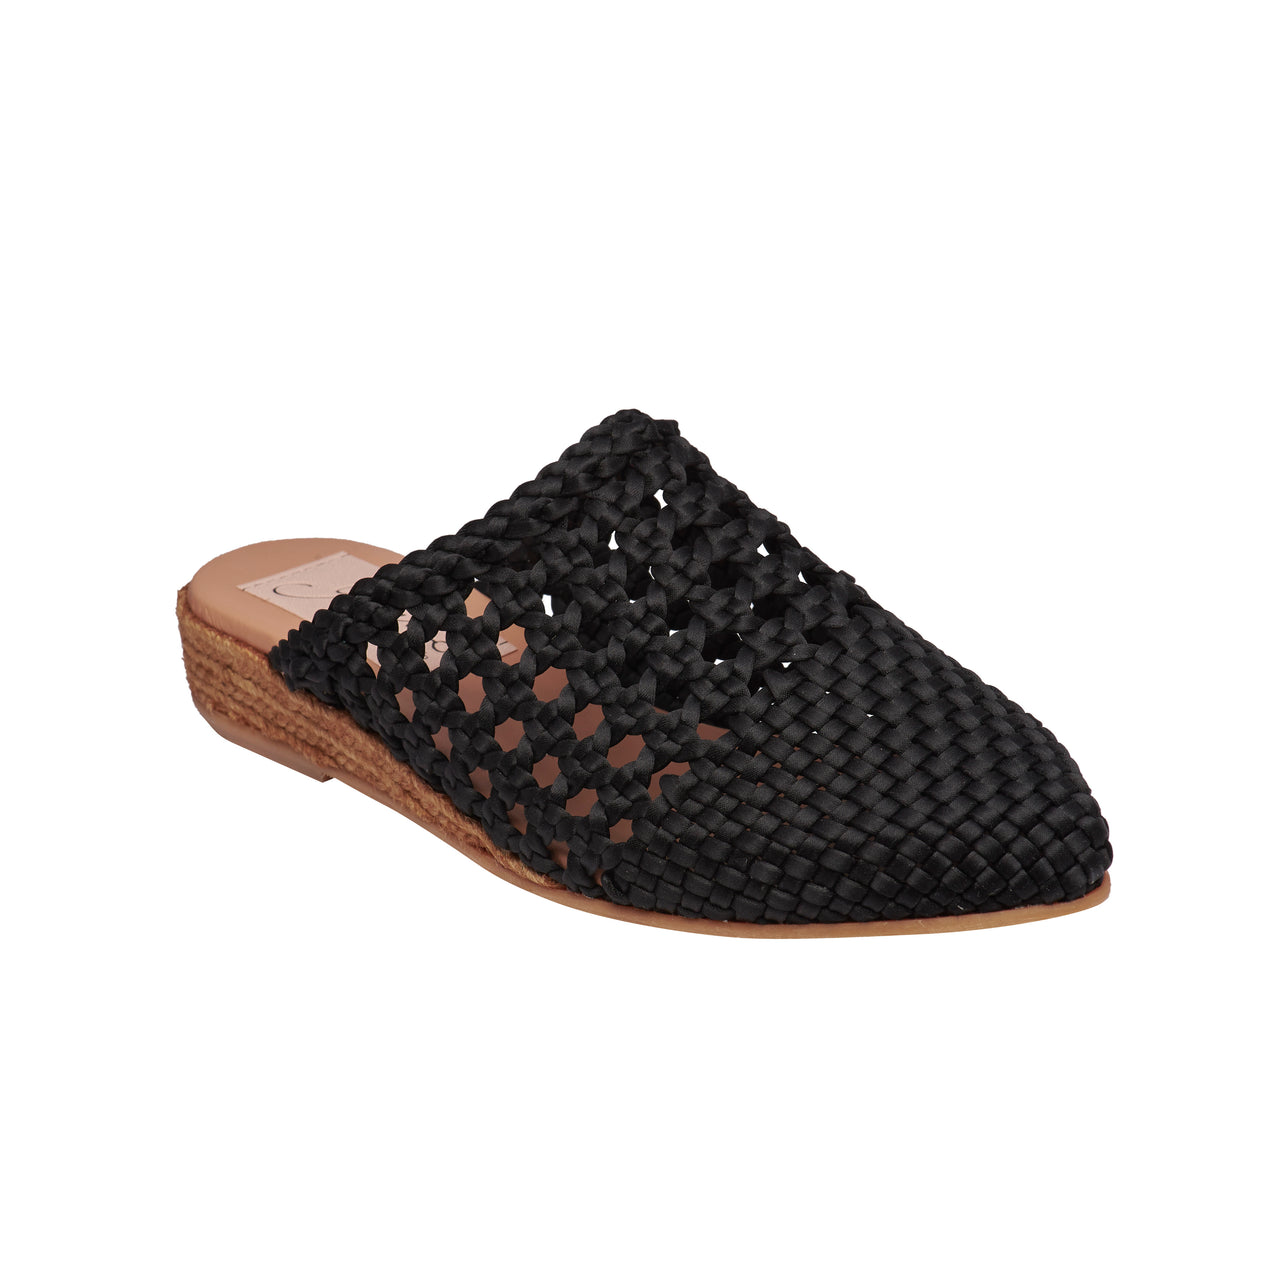 YIRVIN Black espadrilles [sizes 36, 38, 40, 41 available]